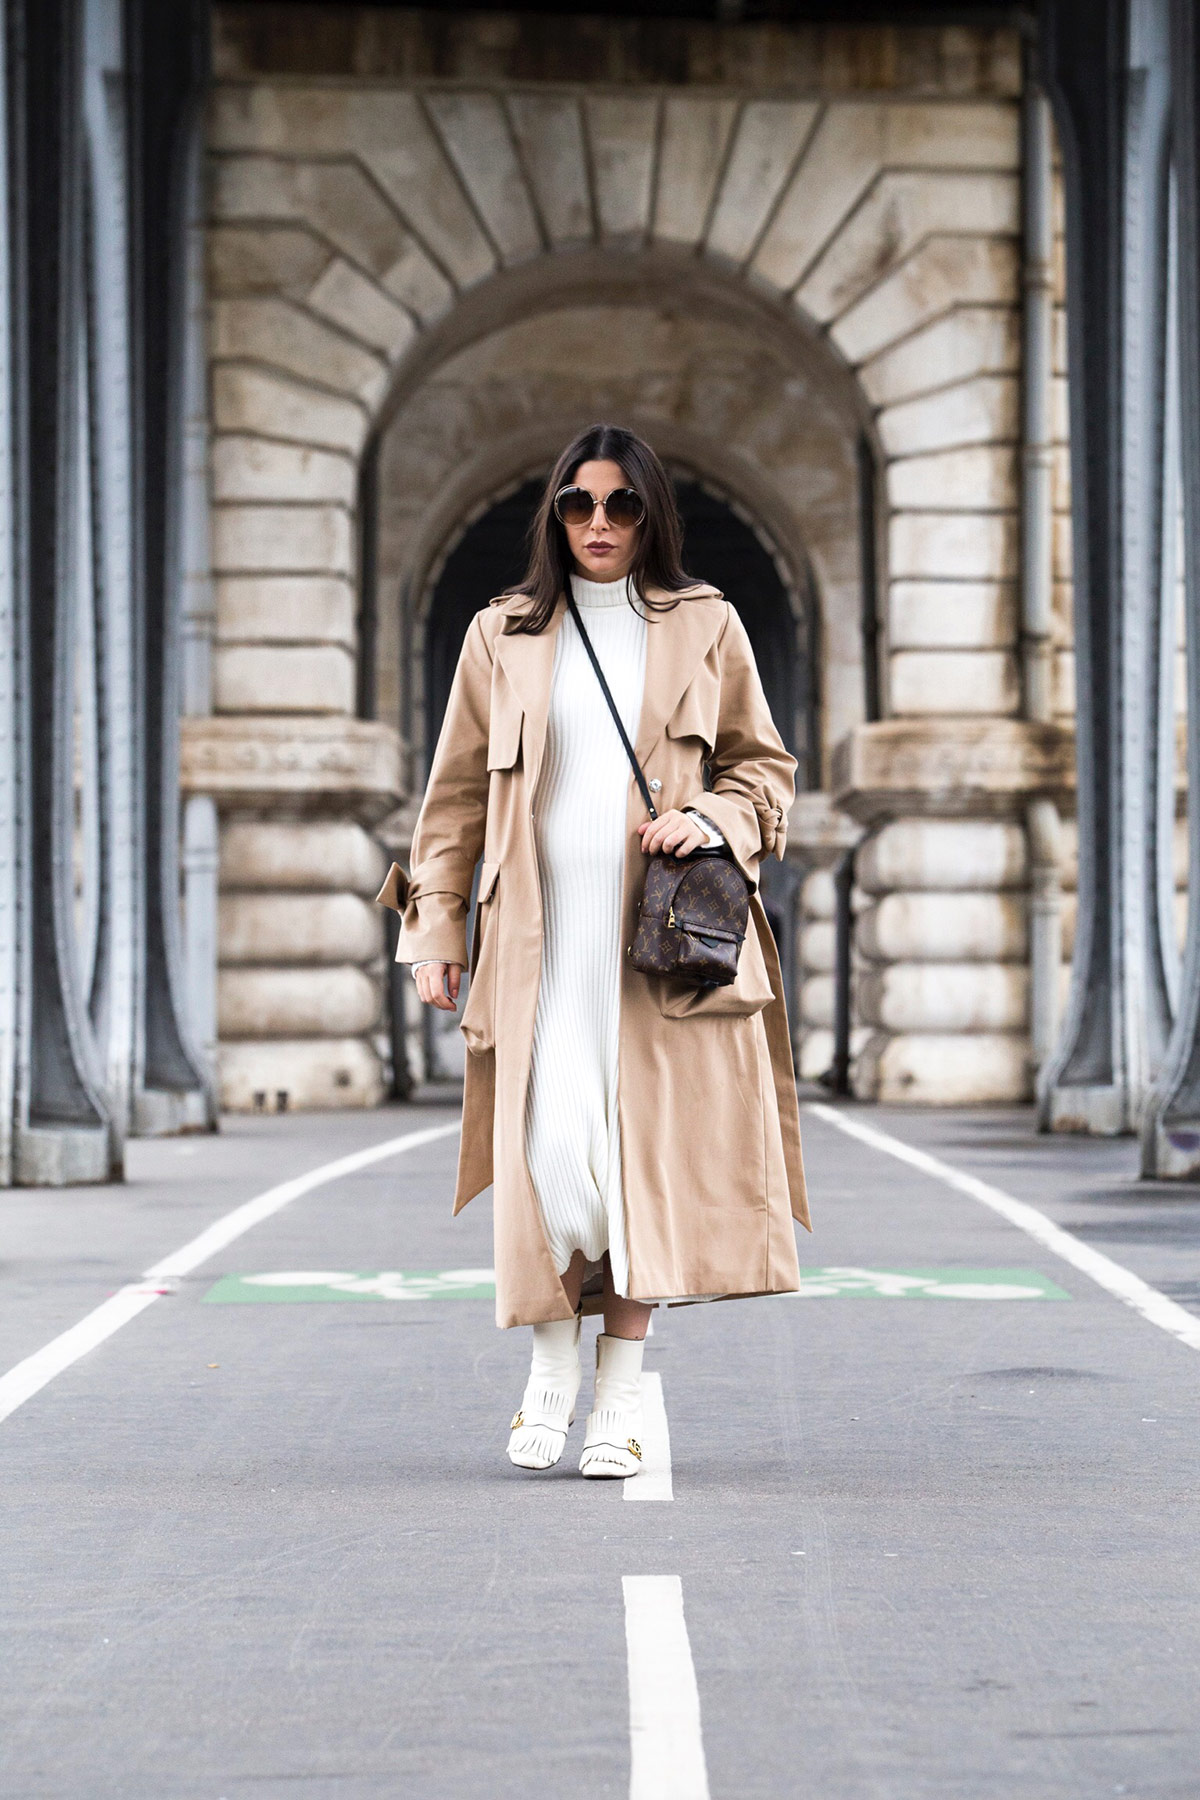 Maje ecru turtleneck dress for fall worn with camel trench coat, Gucci Marmot boots and Louis Vuitton palm springs backpack by Stella Asteria - Fashion & Lifestyle Blogger in Paris - Paris Street Style & Pregnancy Style inspiration